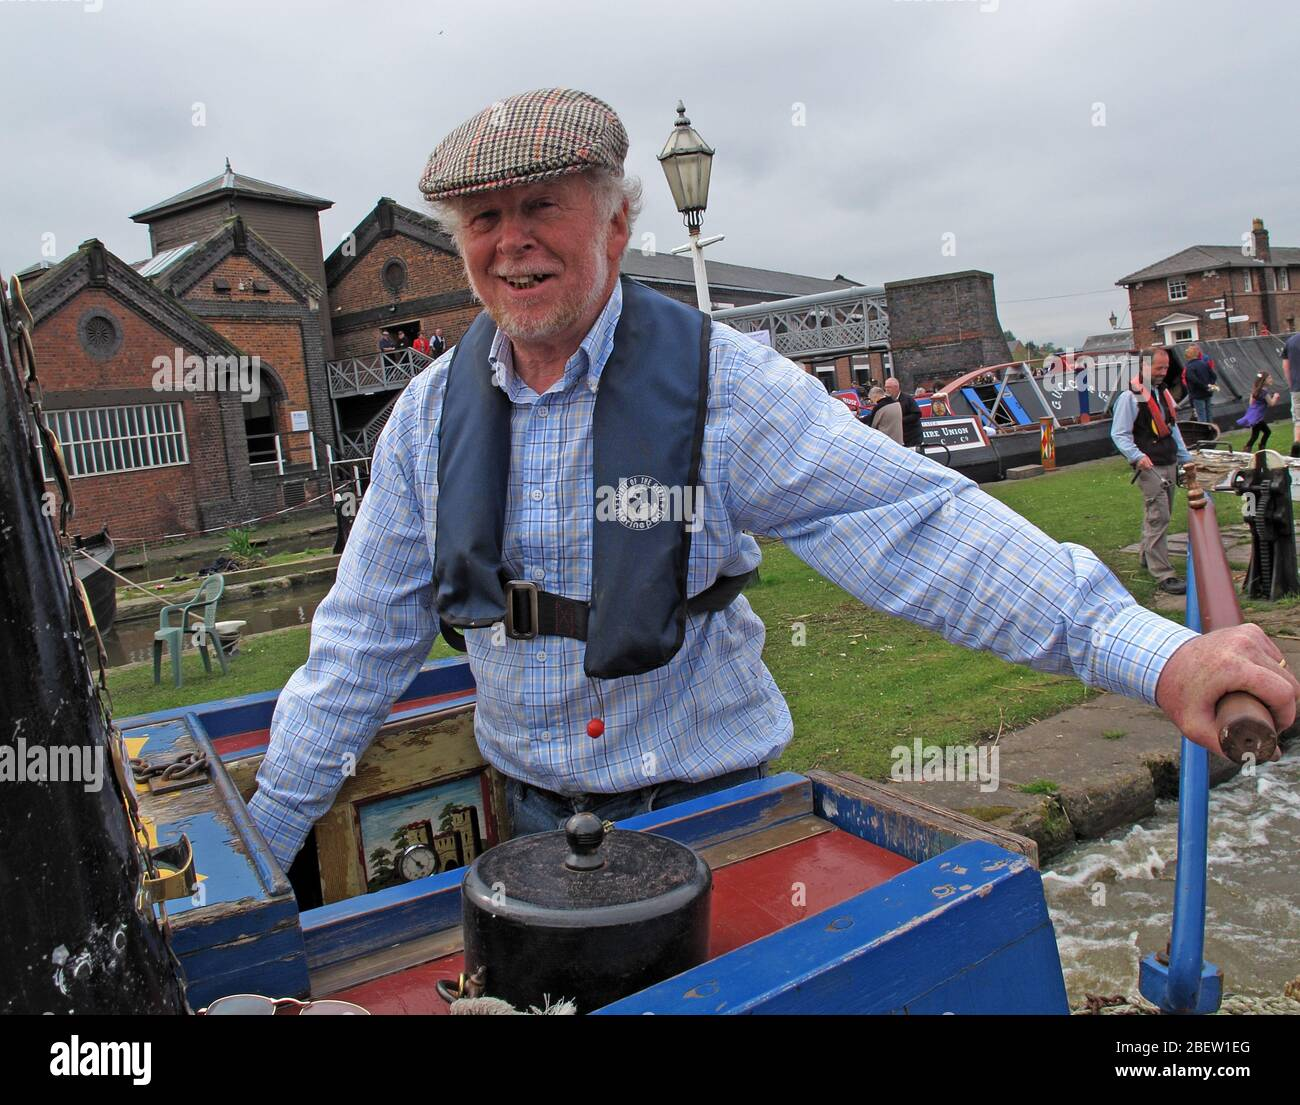 GoTonySmith,@HotpixUK,HotpixUK,British canals,canal,network,boat,carrier,man,person,museum,heritage,history,transport,dock,docks,meets,Manchester Ship Canal,River Mersey,Cheshire,UK,England,North West England,sailor,boater,waterways,British canal system,water transport,United Kingdom,Industrial Revolution,transportation,water,nationwide canal network,nationwide,canal network,working canal boats,canal transport,tourism,CH65,narrowboat boater